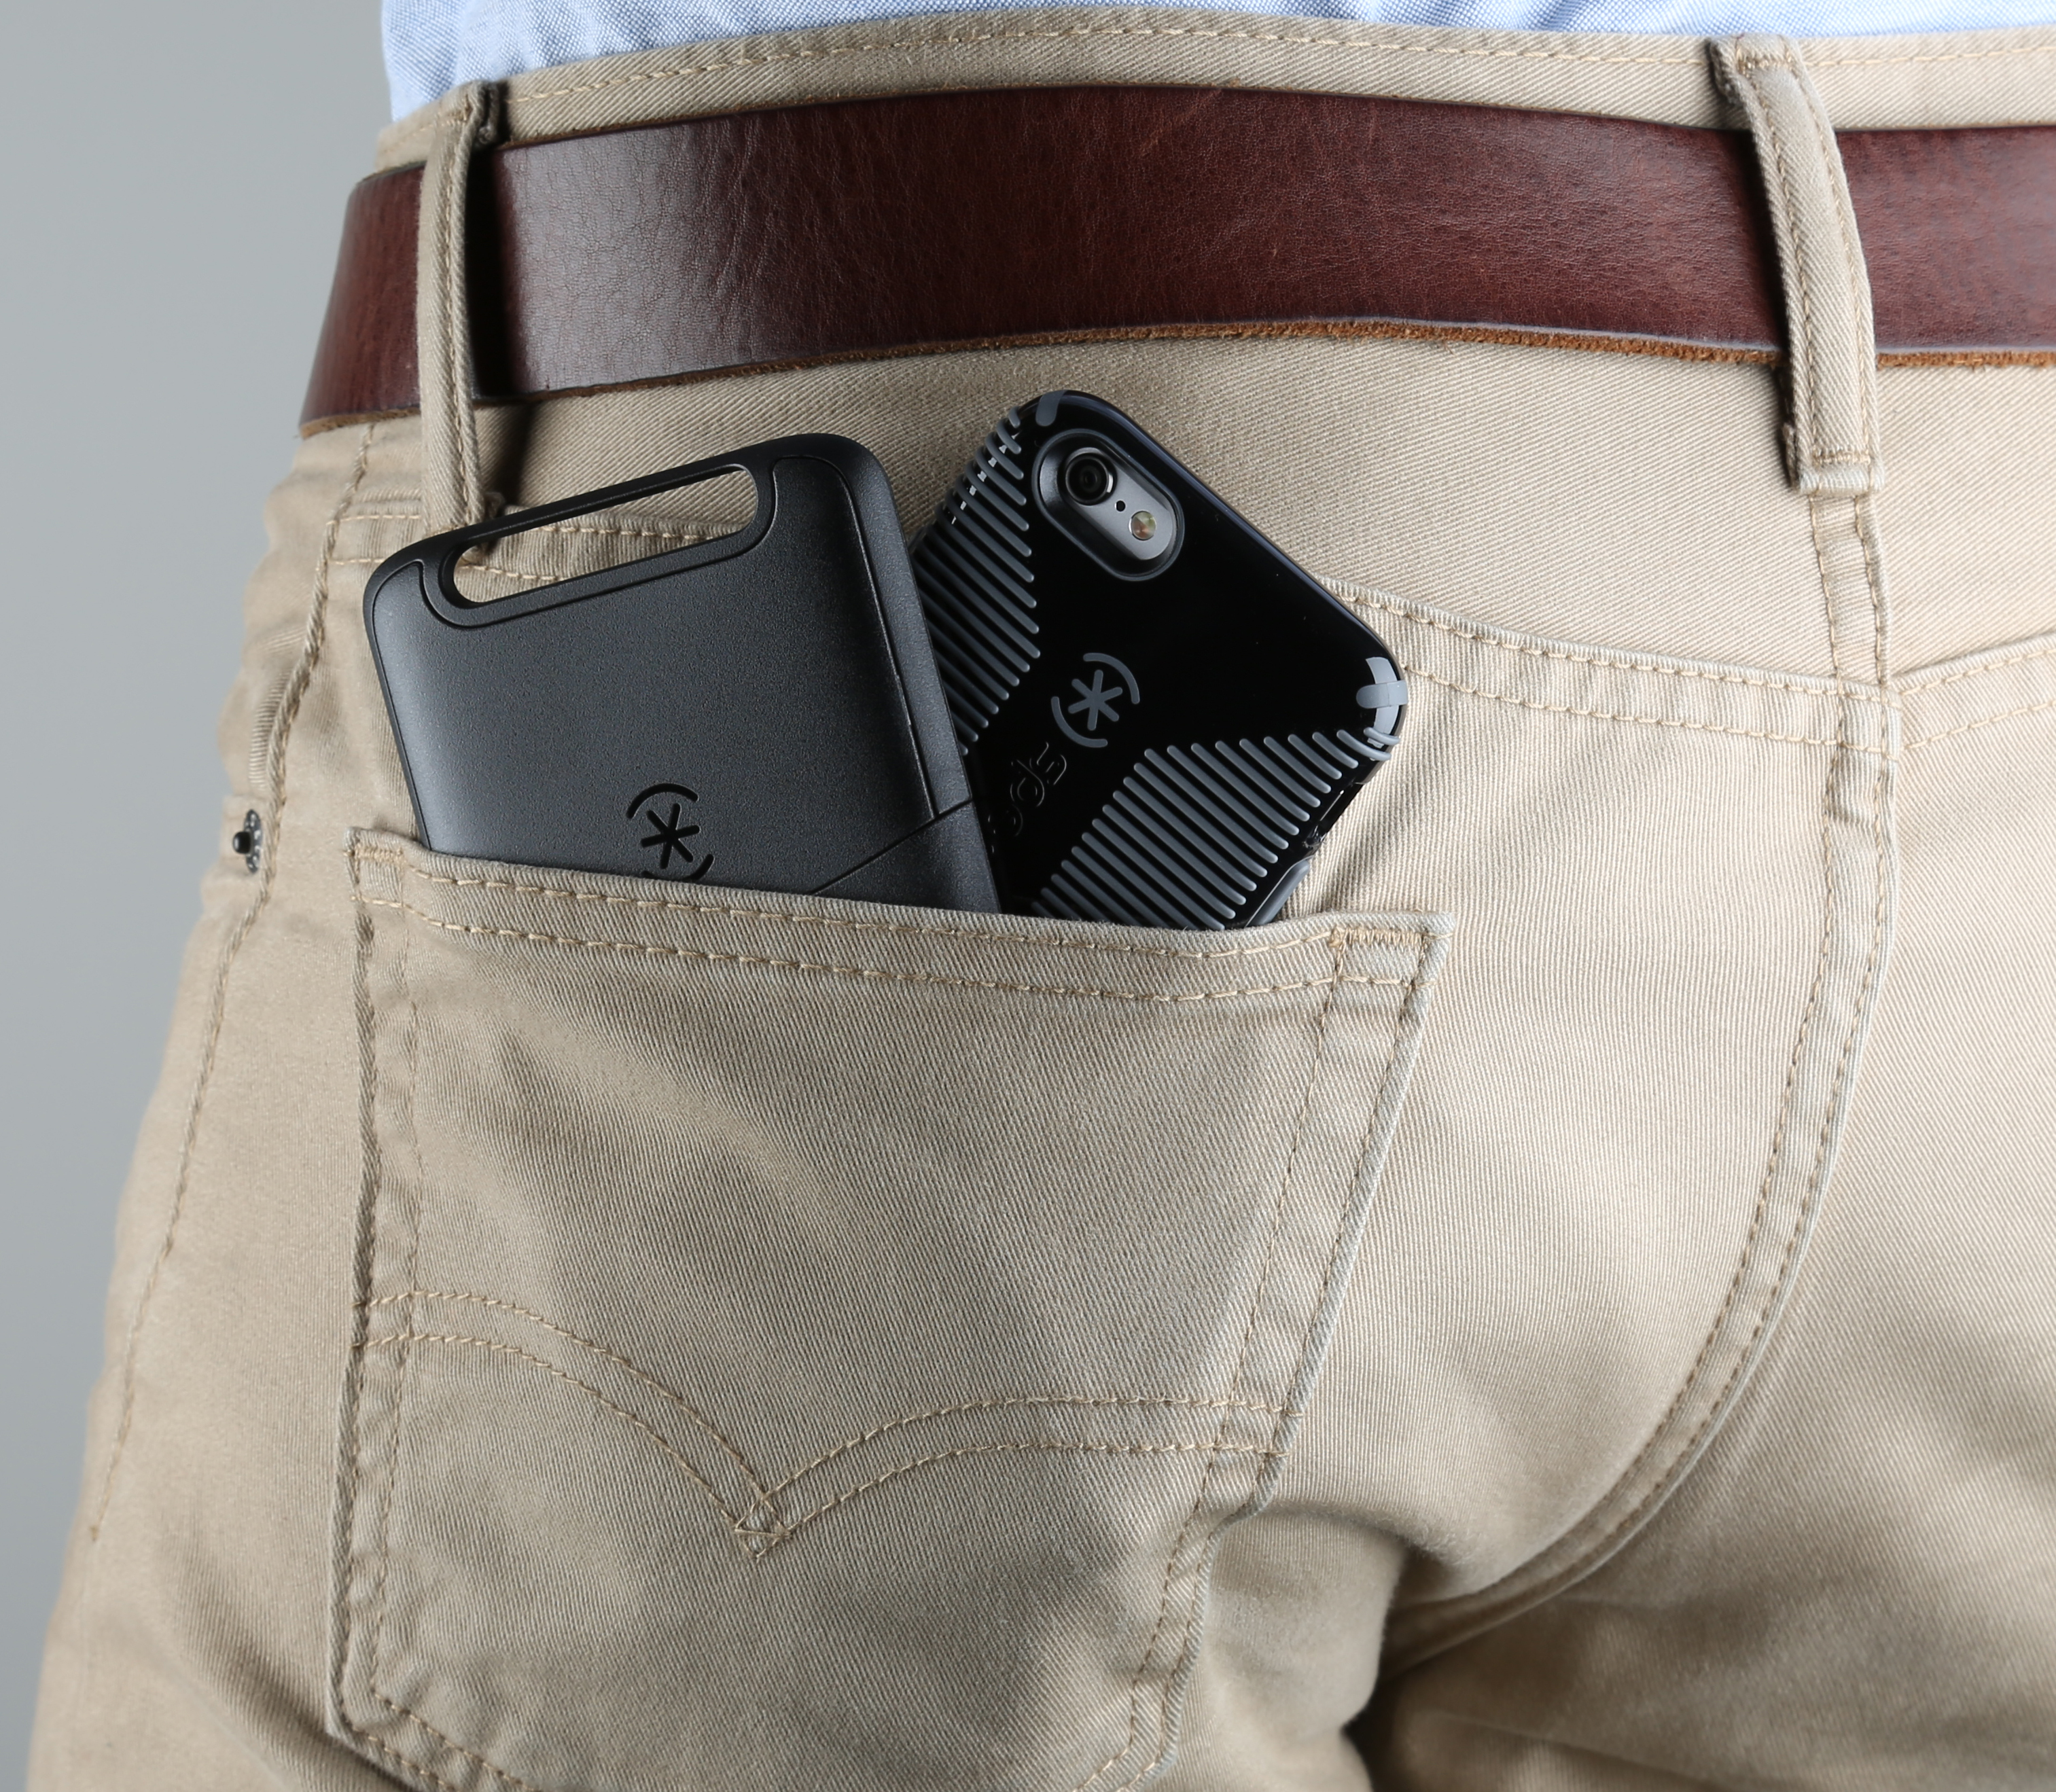 Speck Pocket-VR with CandyShell Grip case